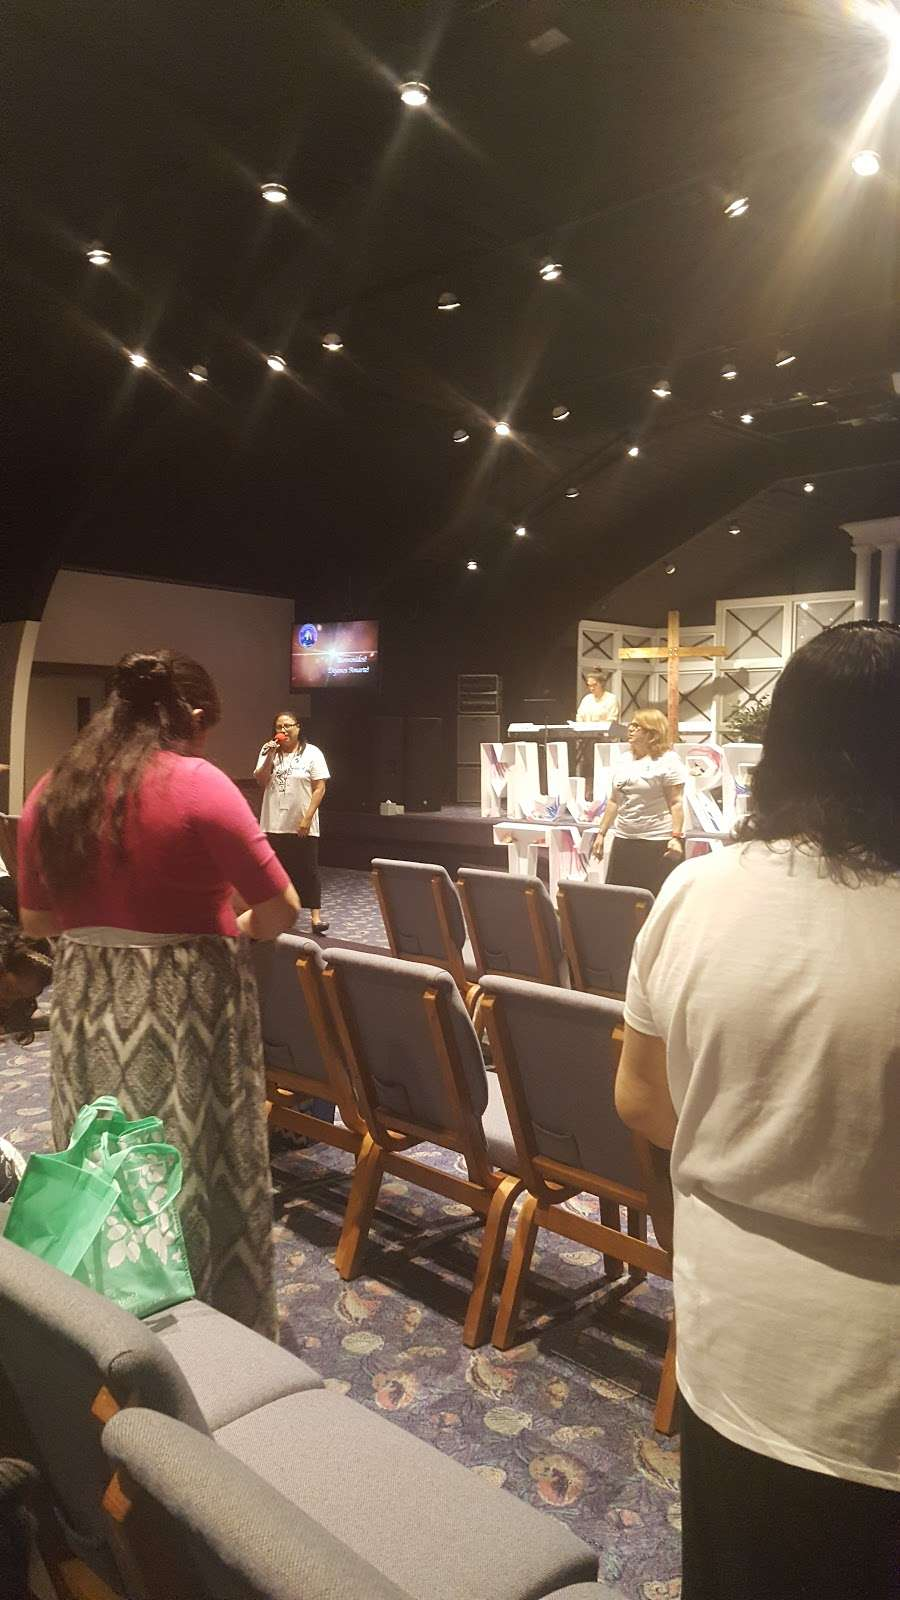 Church On the Rock - church  | Photo 9 of 10 | Address: 649 Old Mill Rd, Millersville, MD 21108, USA | Phone: (410) 987-4714